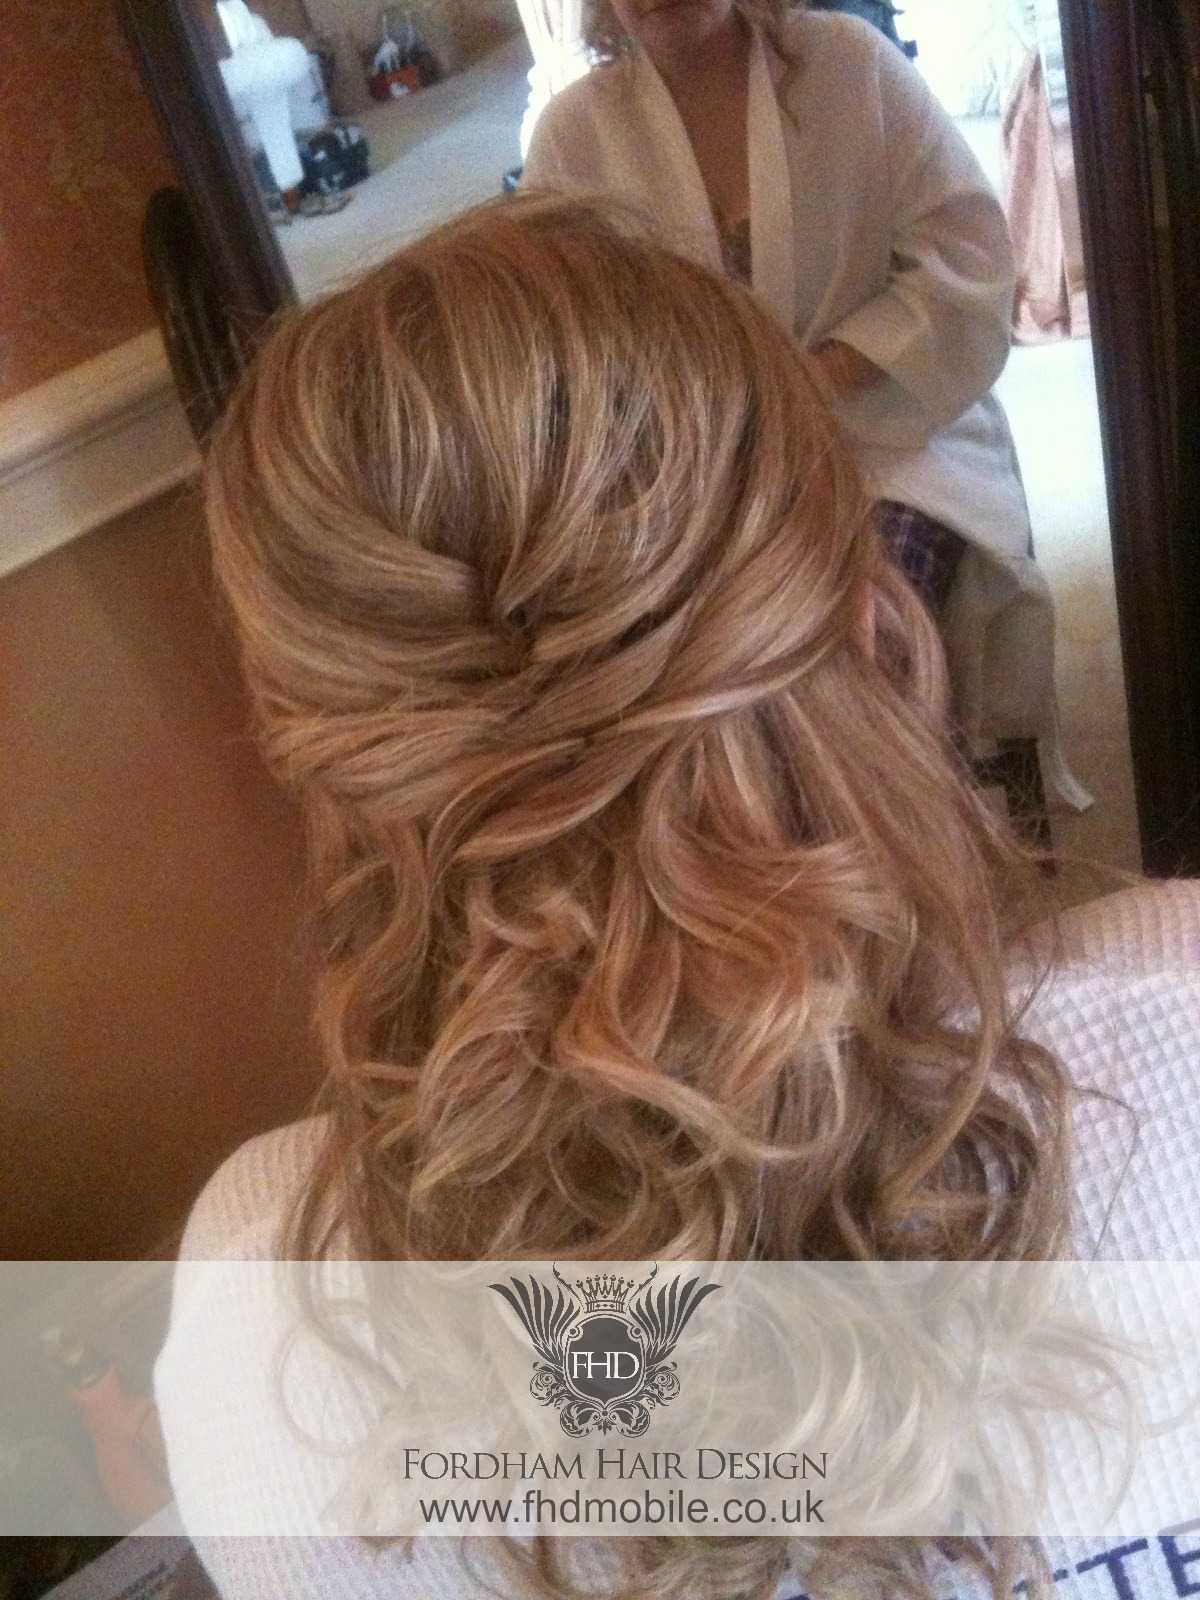 Fordham Hair Design Wedding Bridal Hair Specialist Clearwell